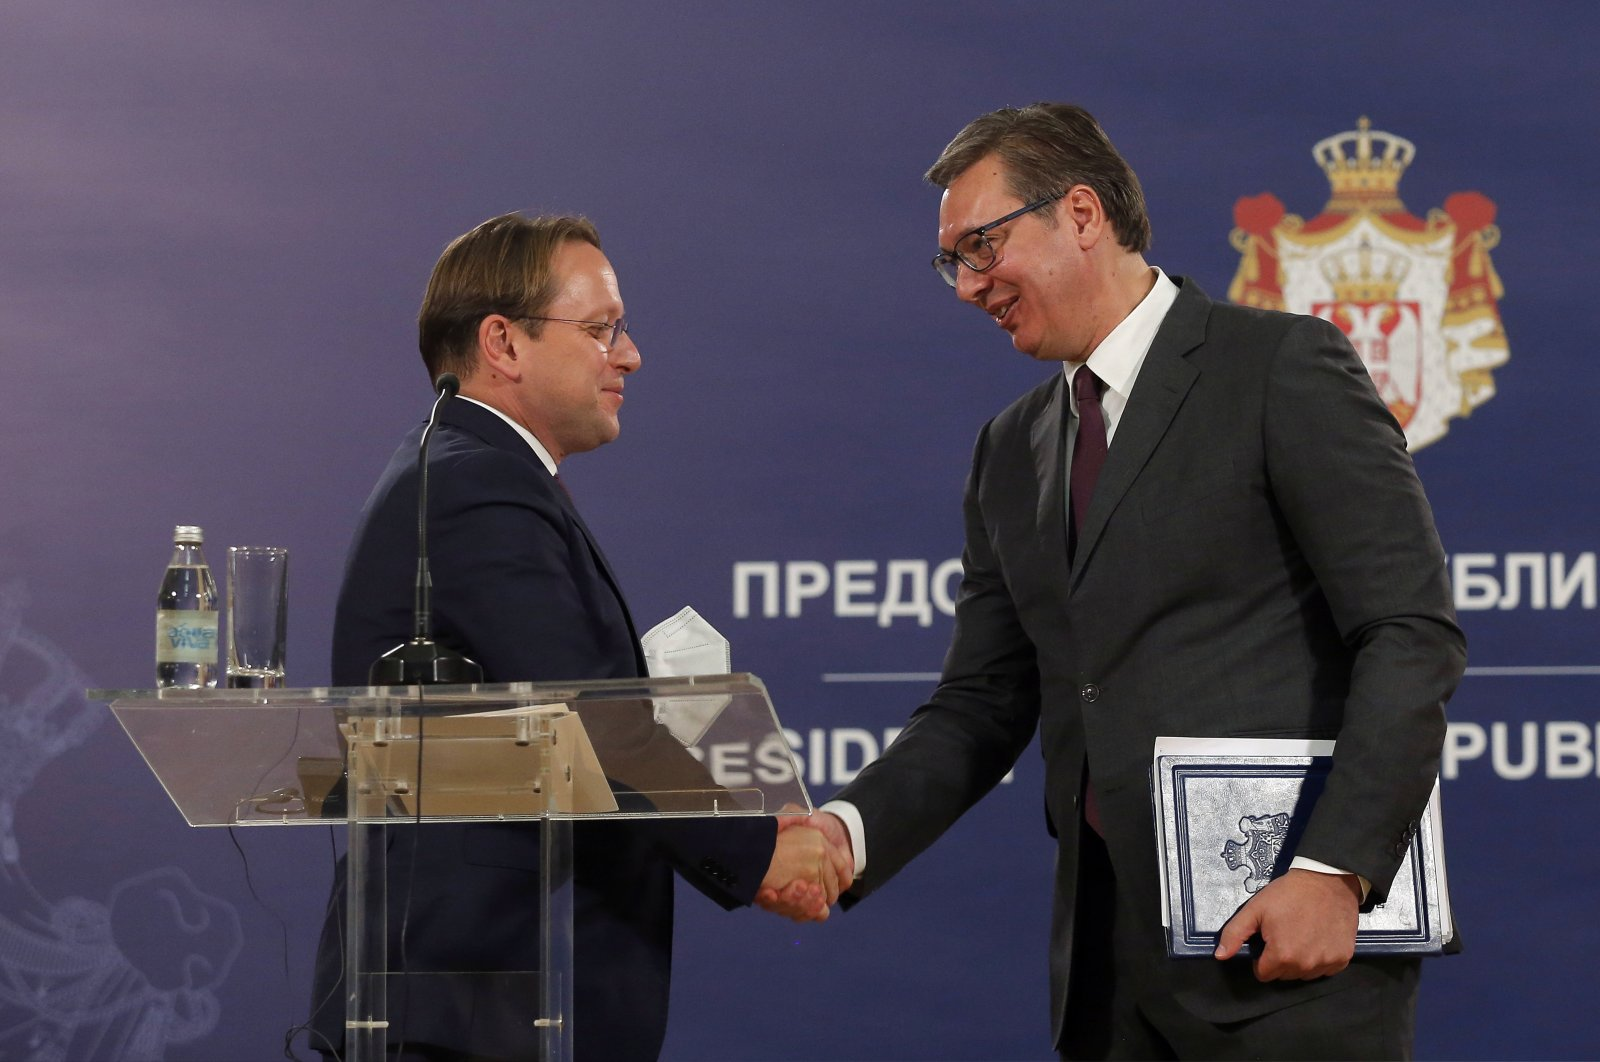 European Commissioner for Neighborhood and Enlargement Oliver Varhelyi (L) shakes hands with Serbian President Aleksandar Vucic (R) after their meeting in Belgrade, Serbia, Oct. 8, 2020. (EPA Photo)